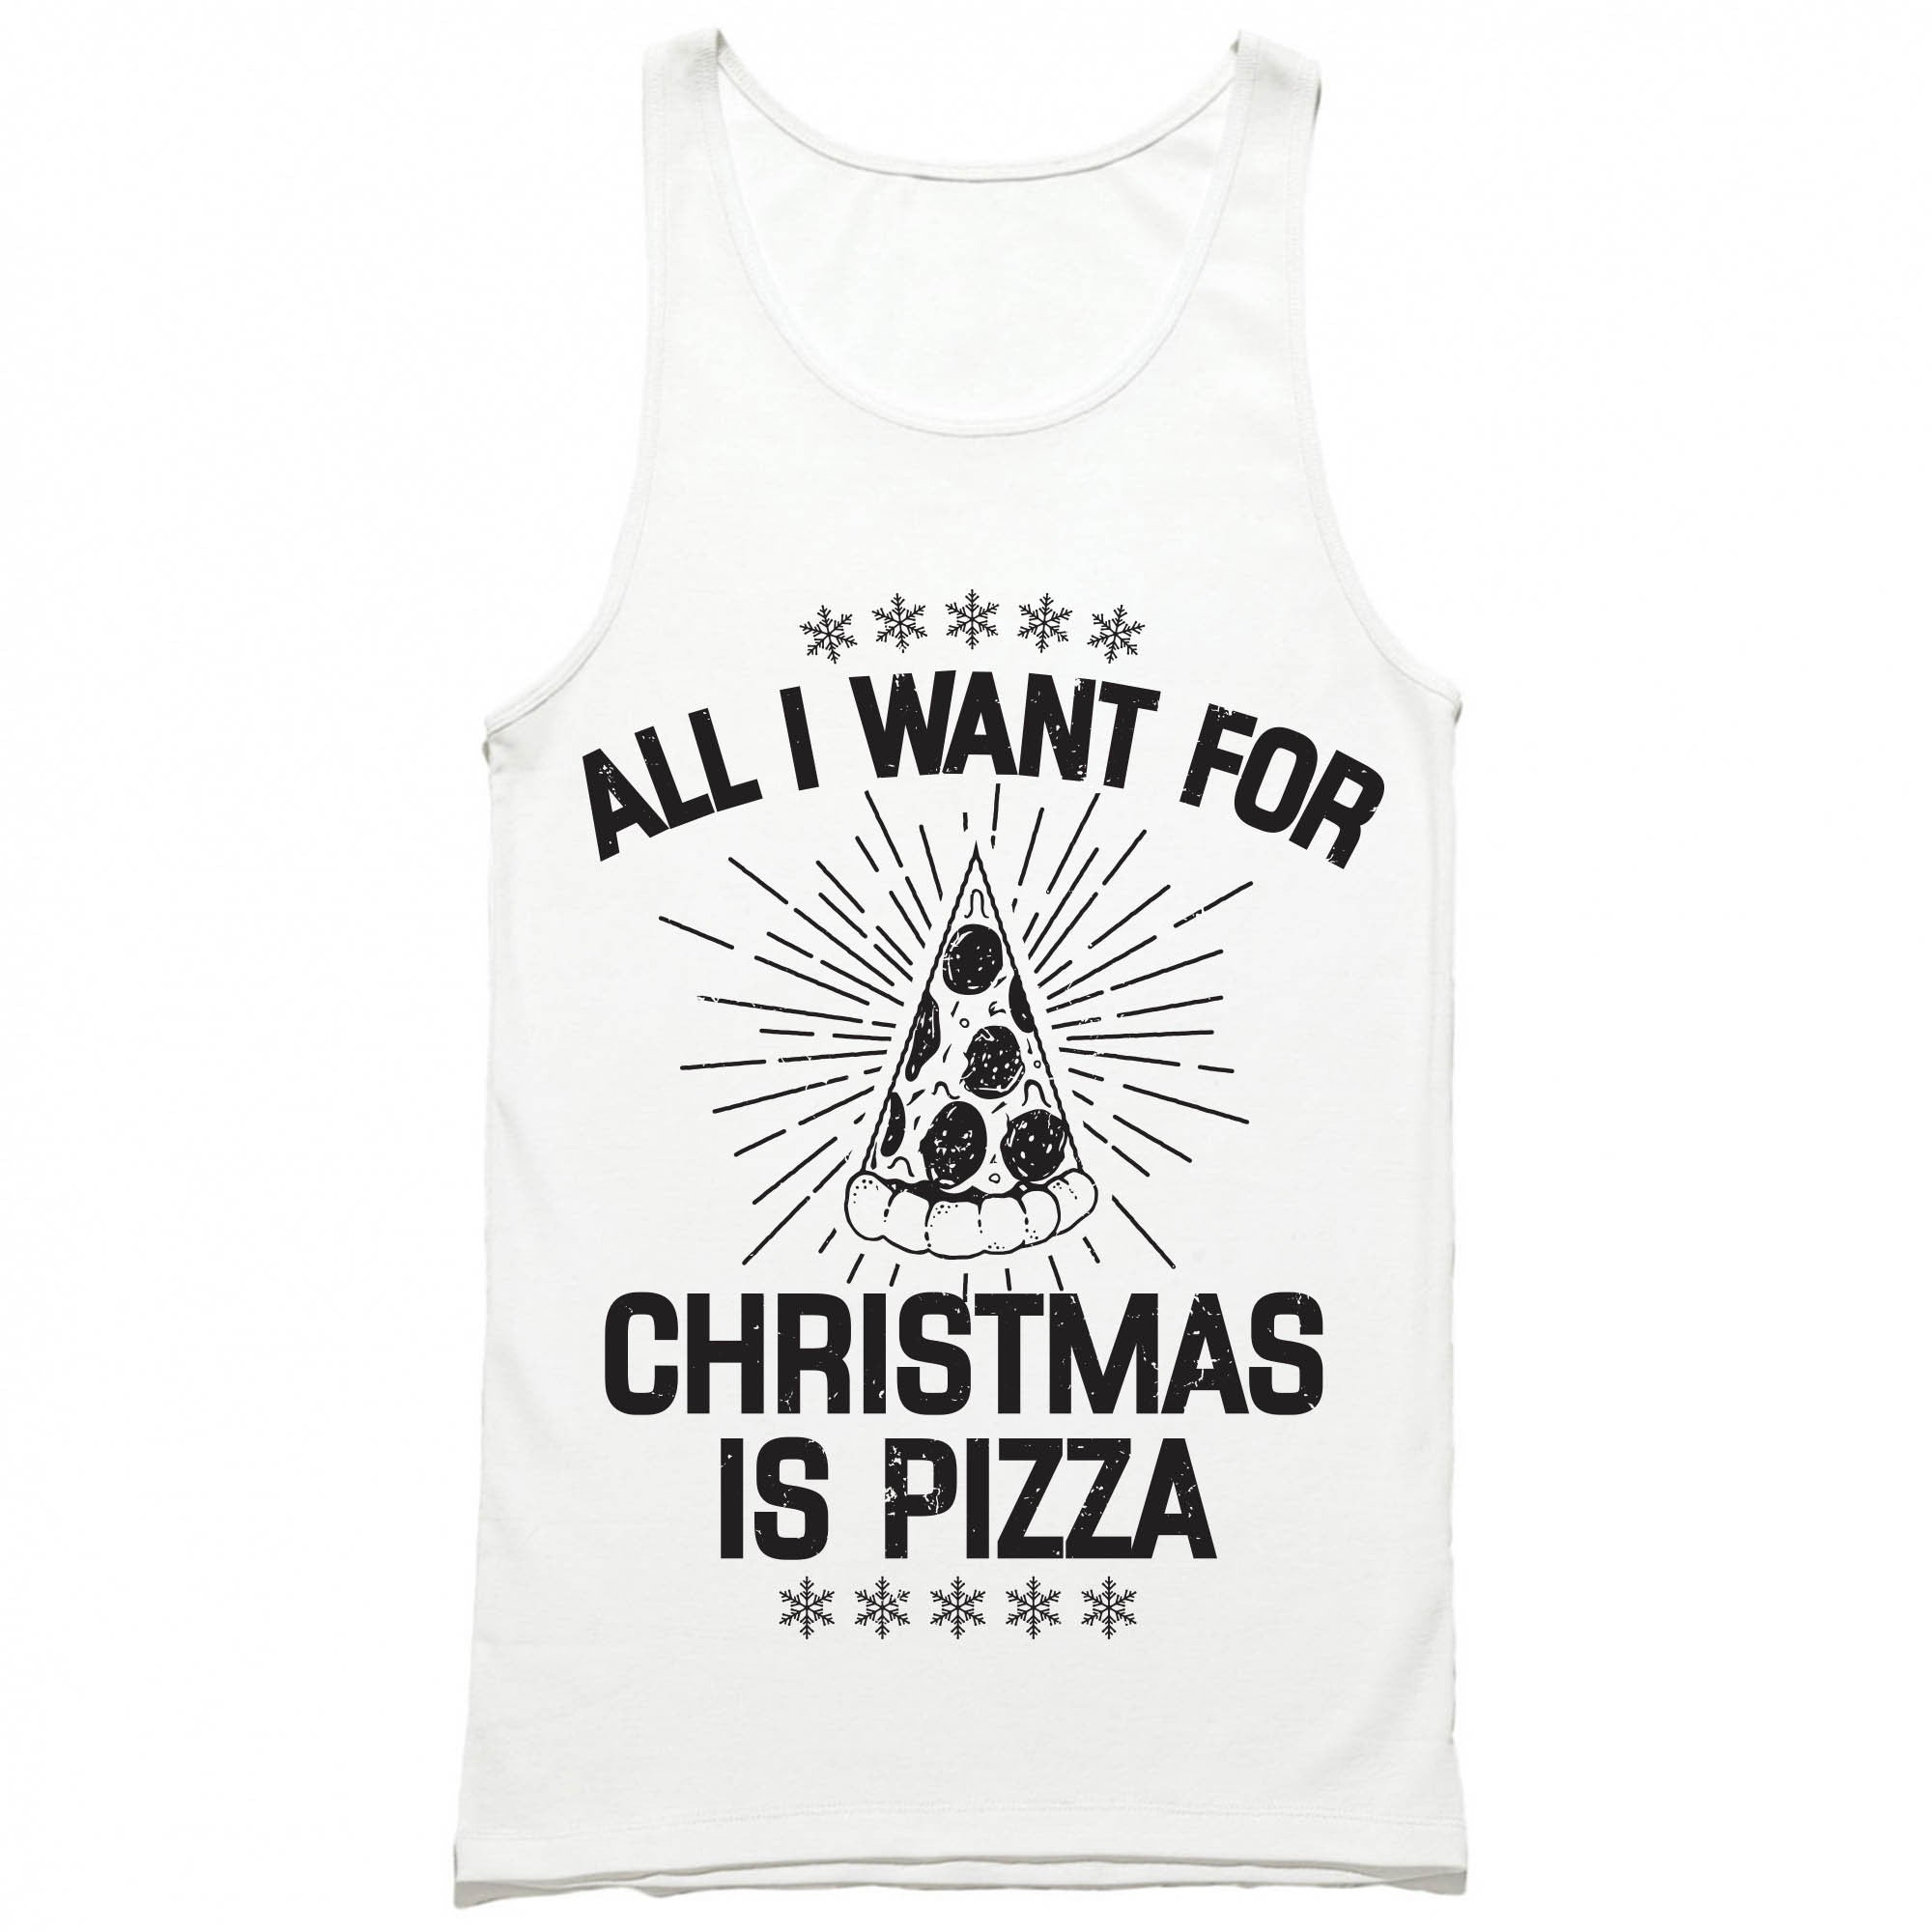 All I Want for Christmas is Pizza Tank Top – HG Apparel